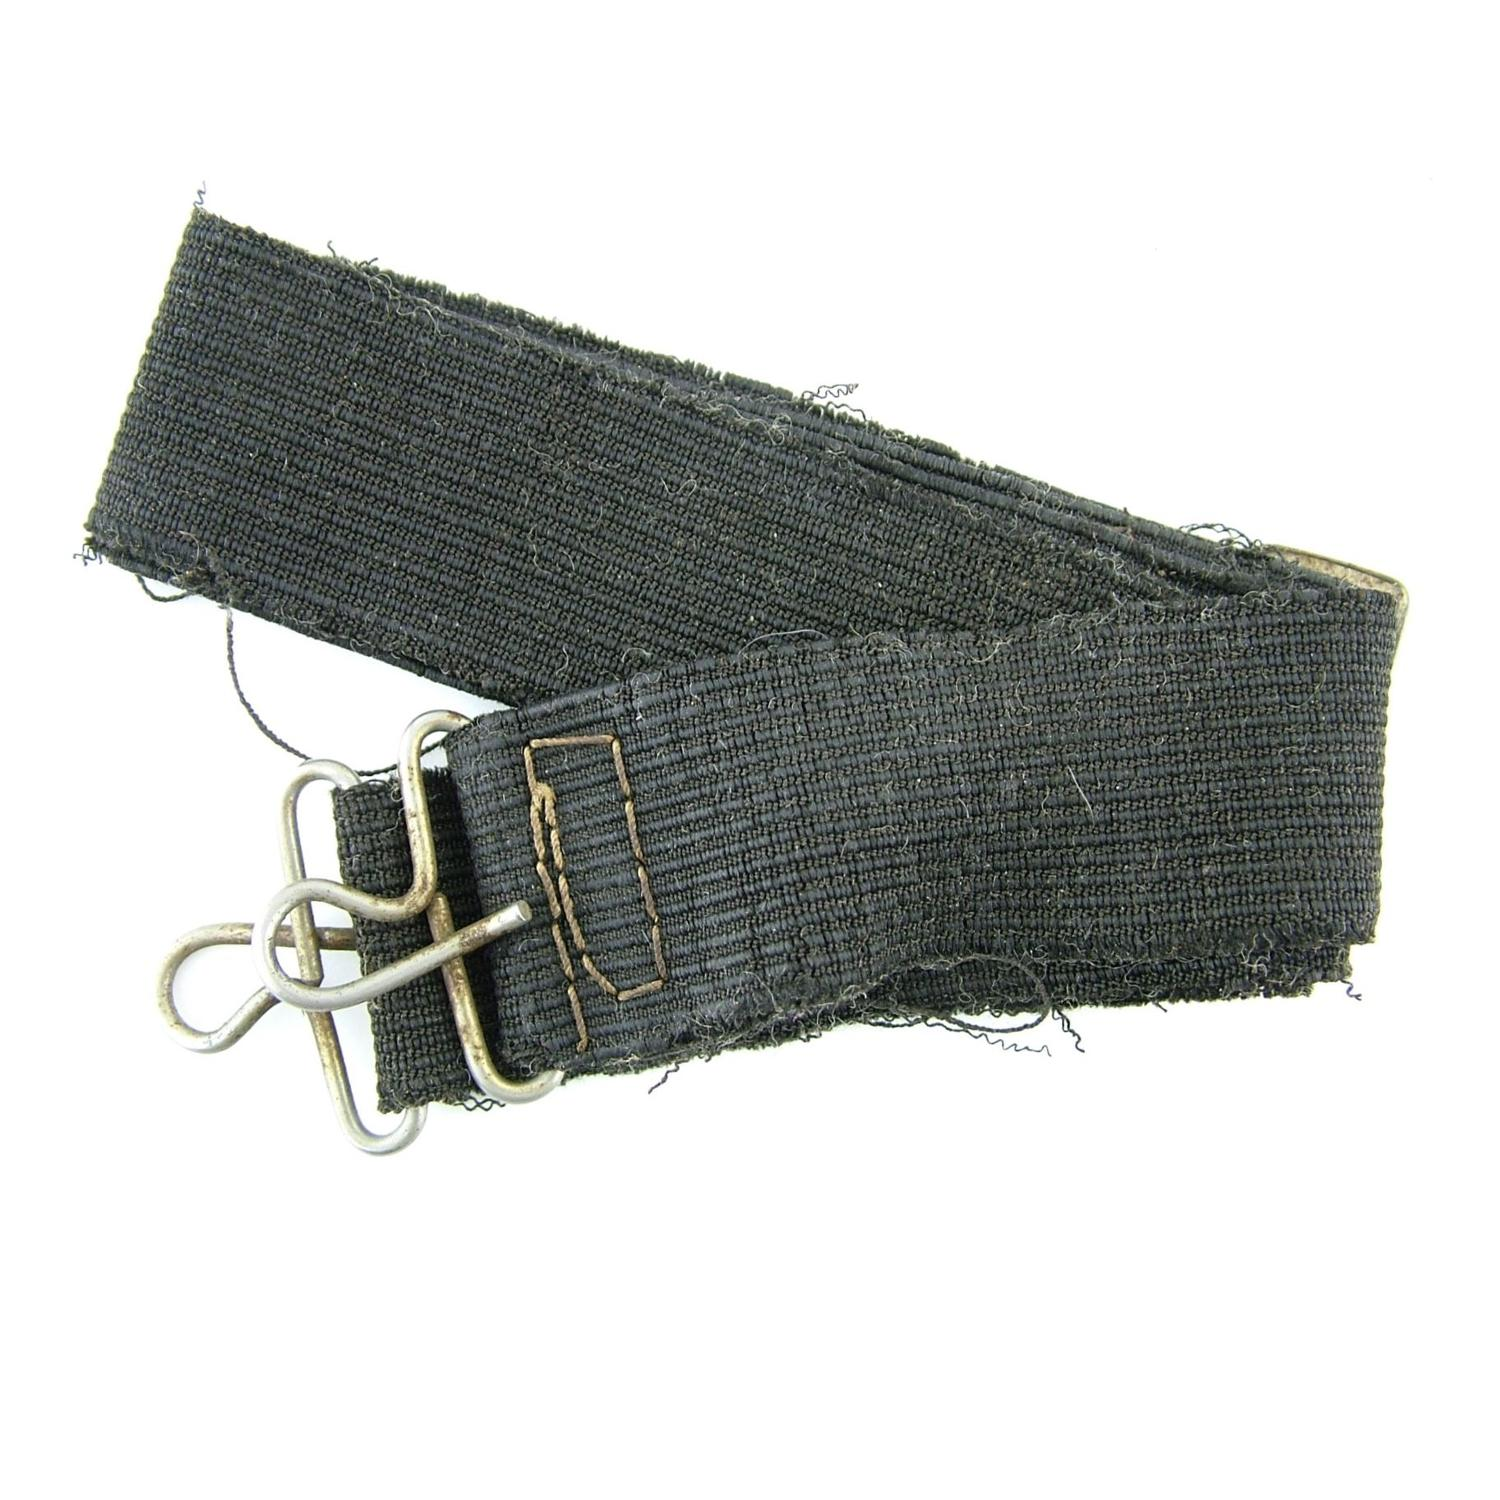 RAF Irvin flying jacket collar strap